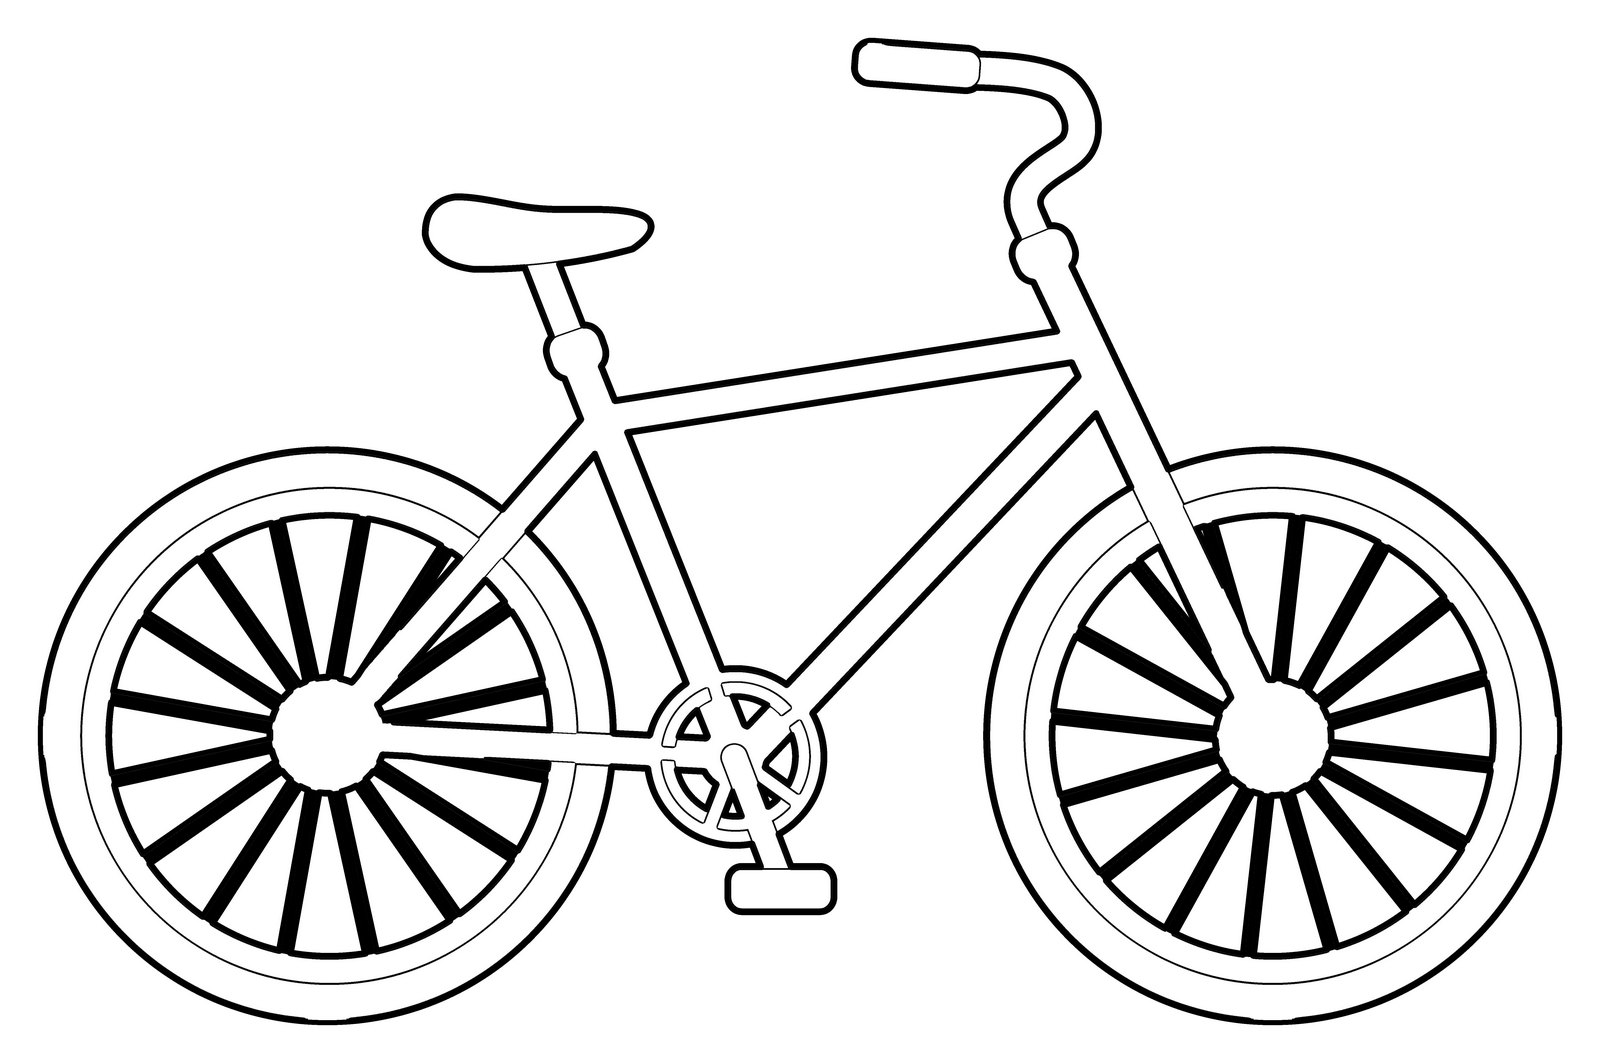 Bicyle Riding Coloring Page For Kids